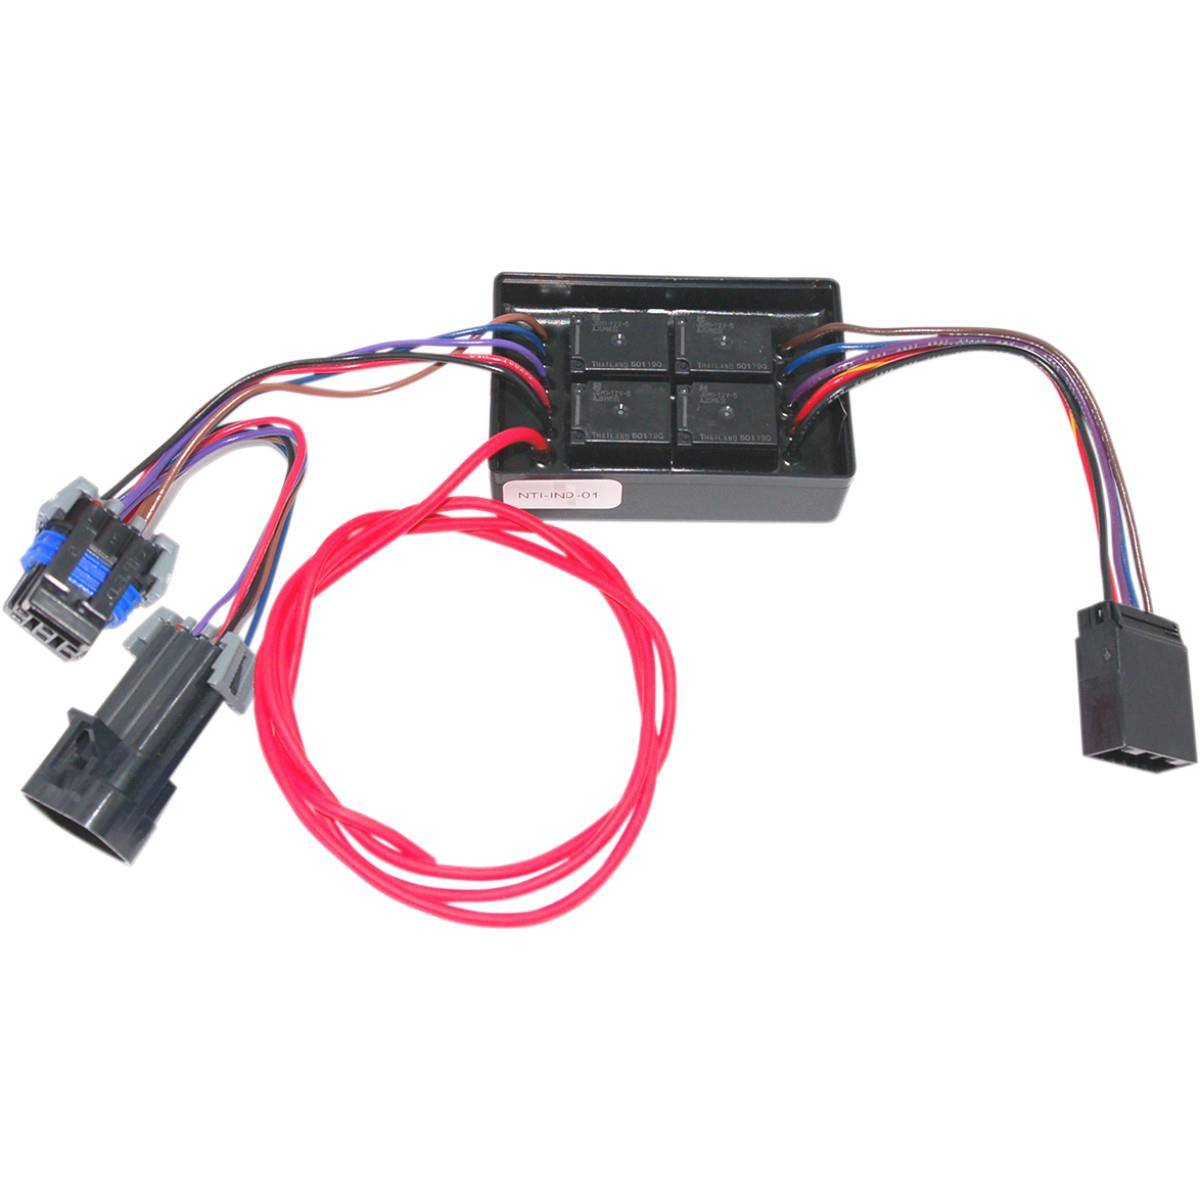 hight resolution of 4 wire trailer isolator harness for sale in portsmouth nh motorbikes plus 603 334 6686